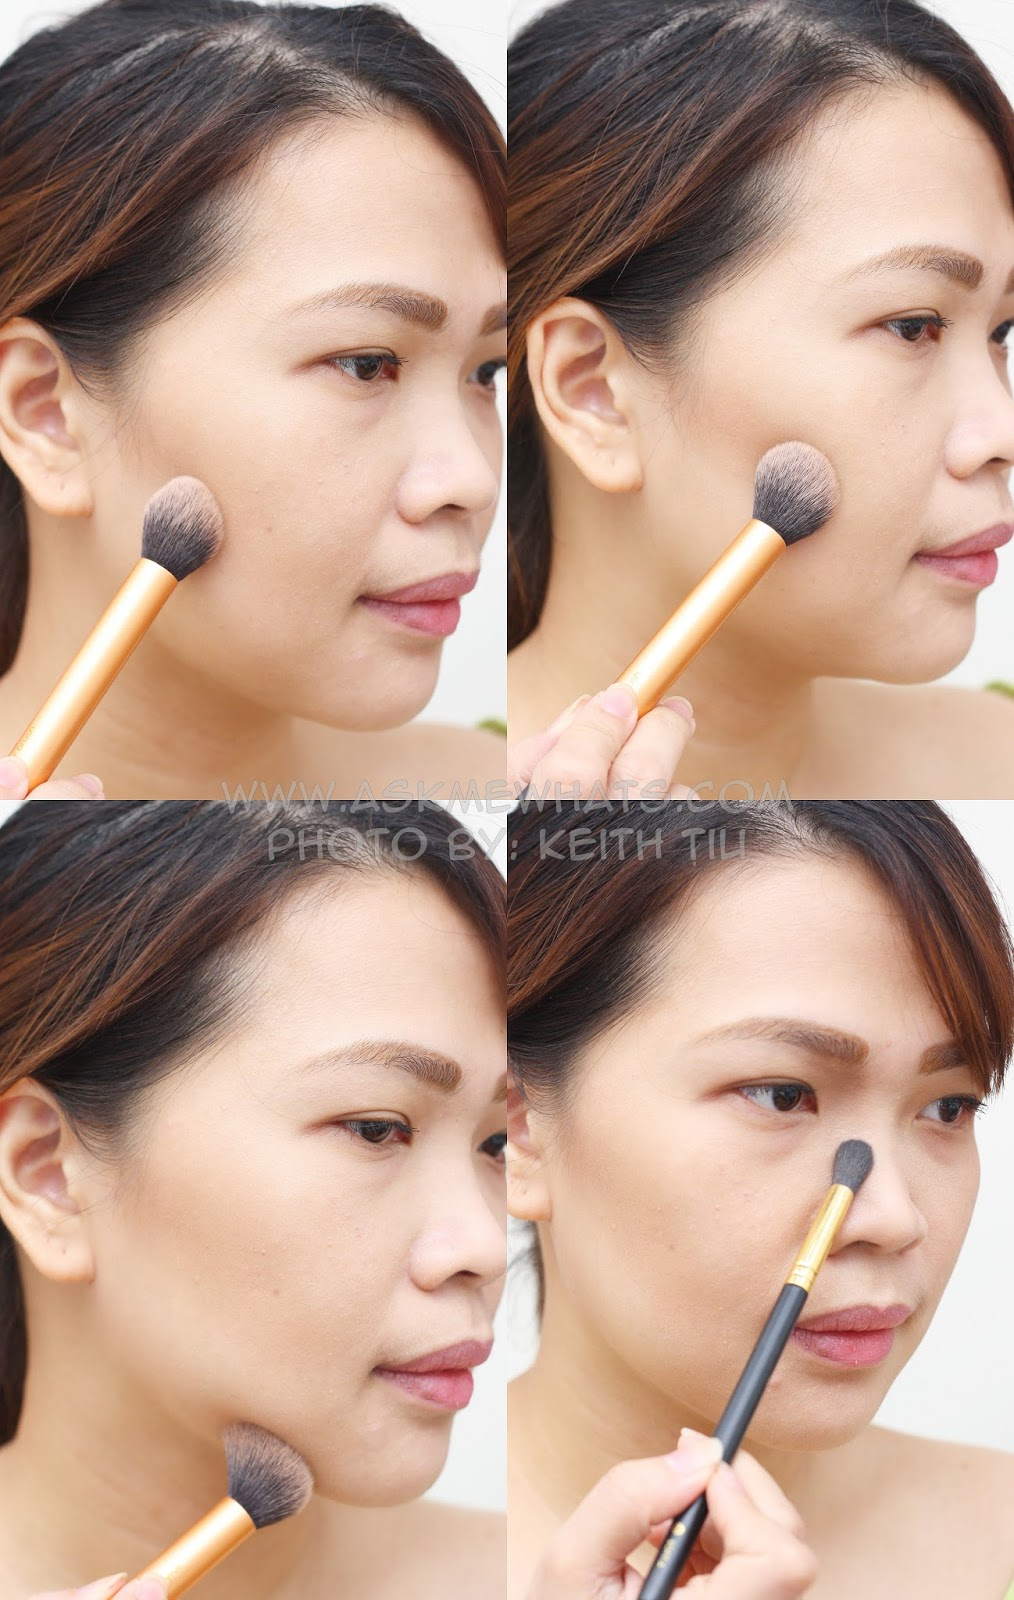 Keep In Mind To Contour Areas Of Your Face That You Want To